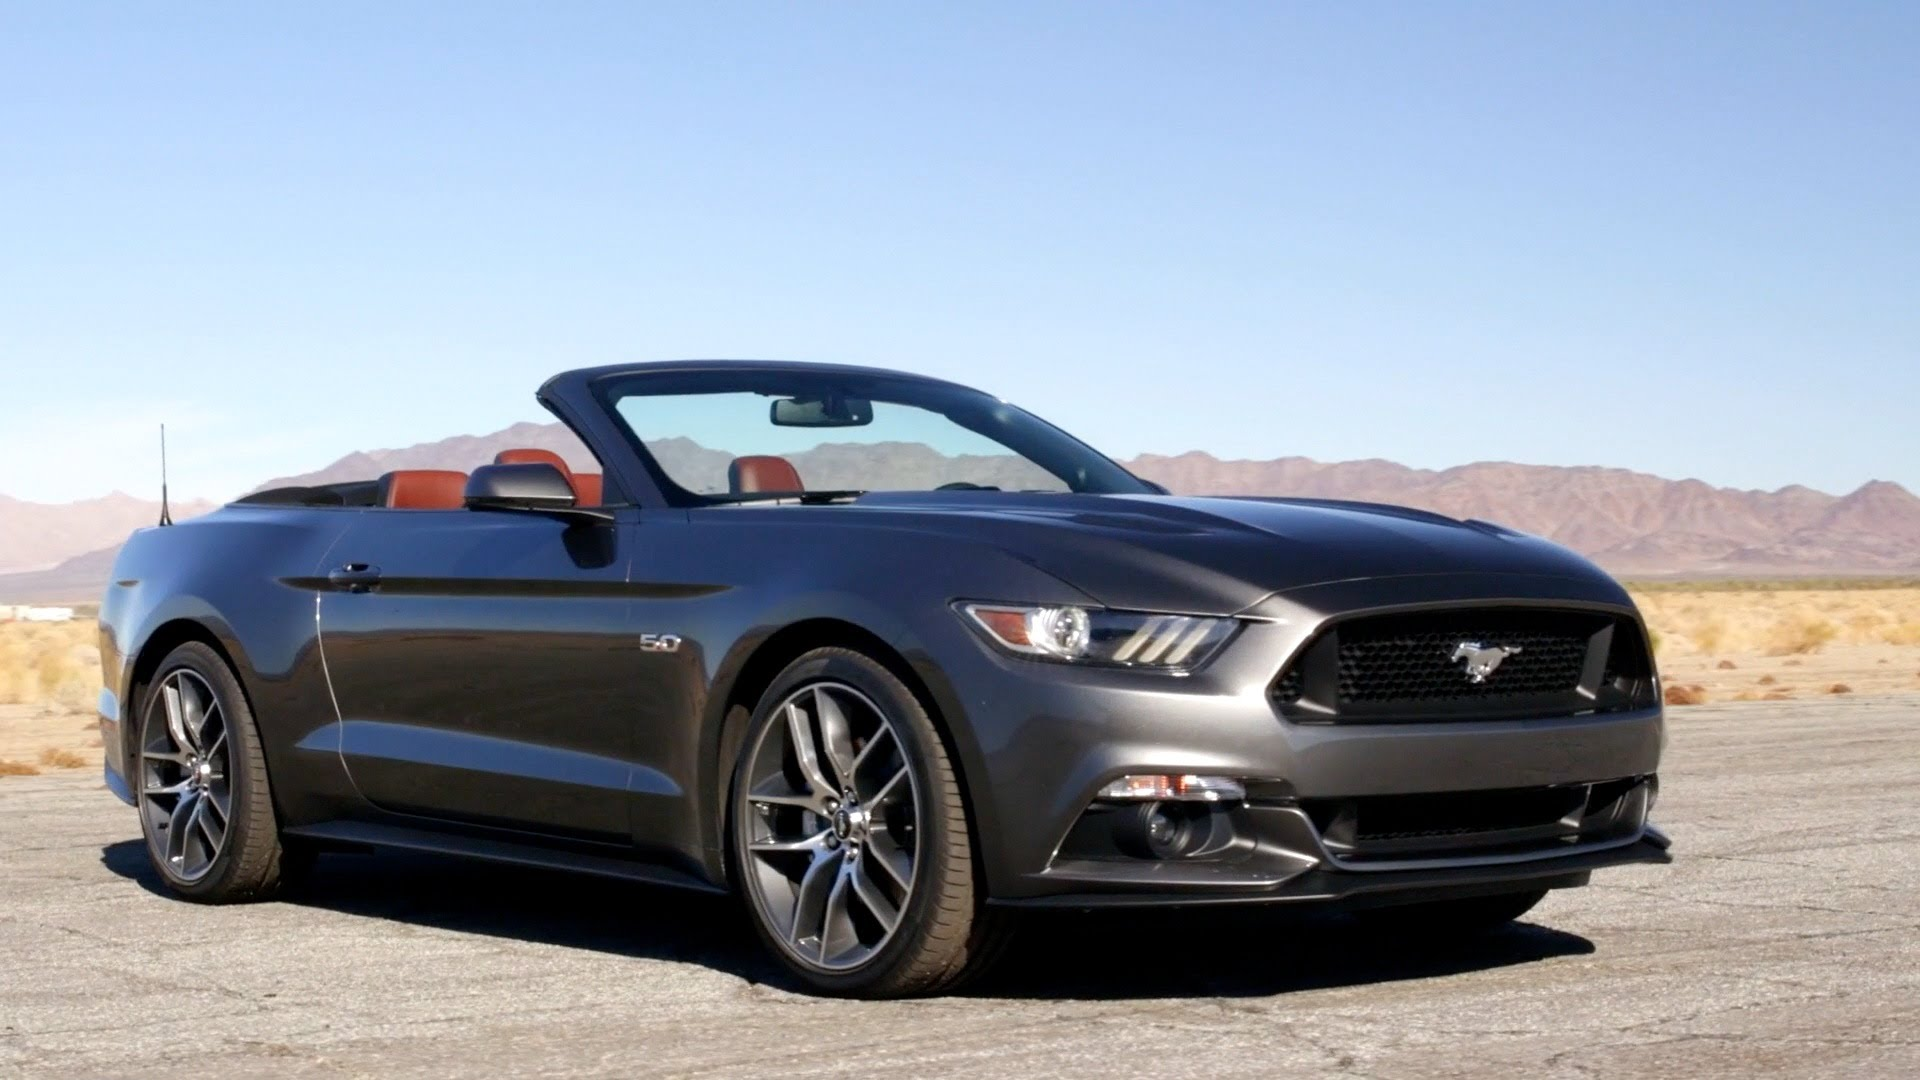 ford mustang cabrio aut luxury cars barcelona rent. Black Bedroom Furniture Sets. Home Design Ideas